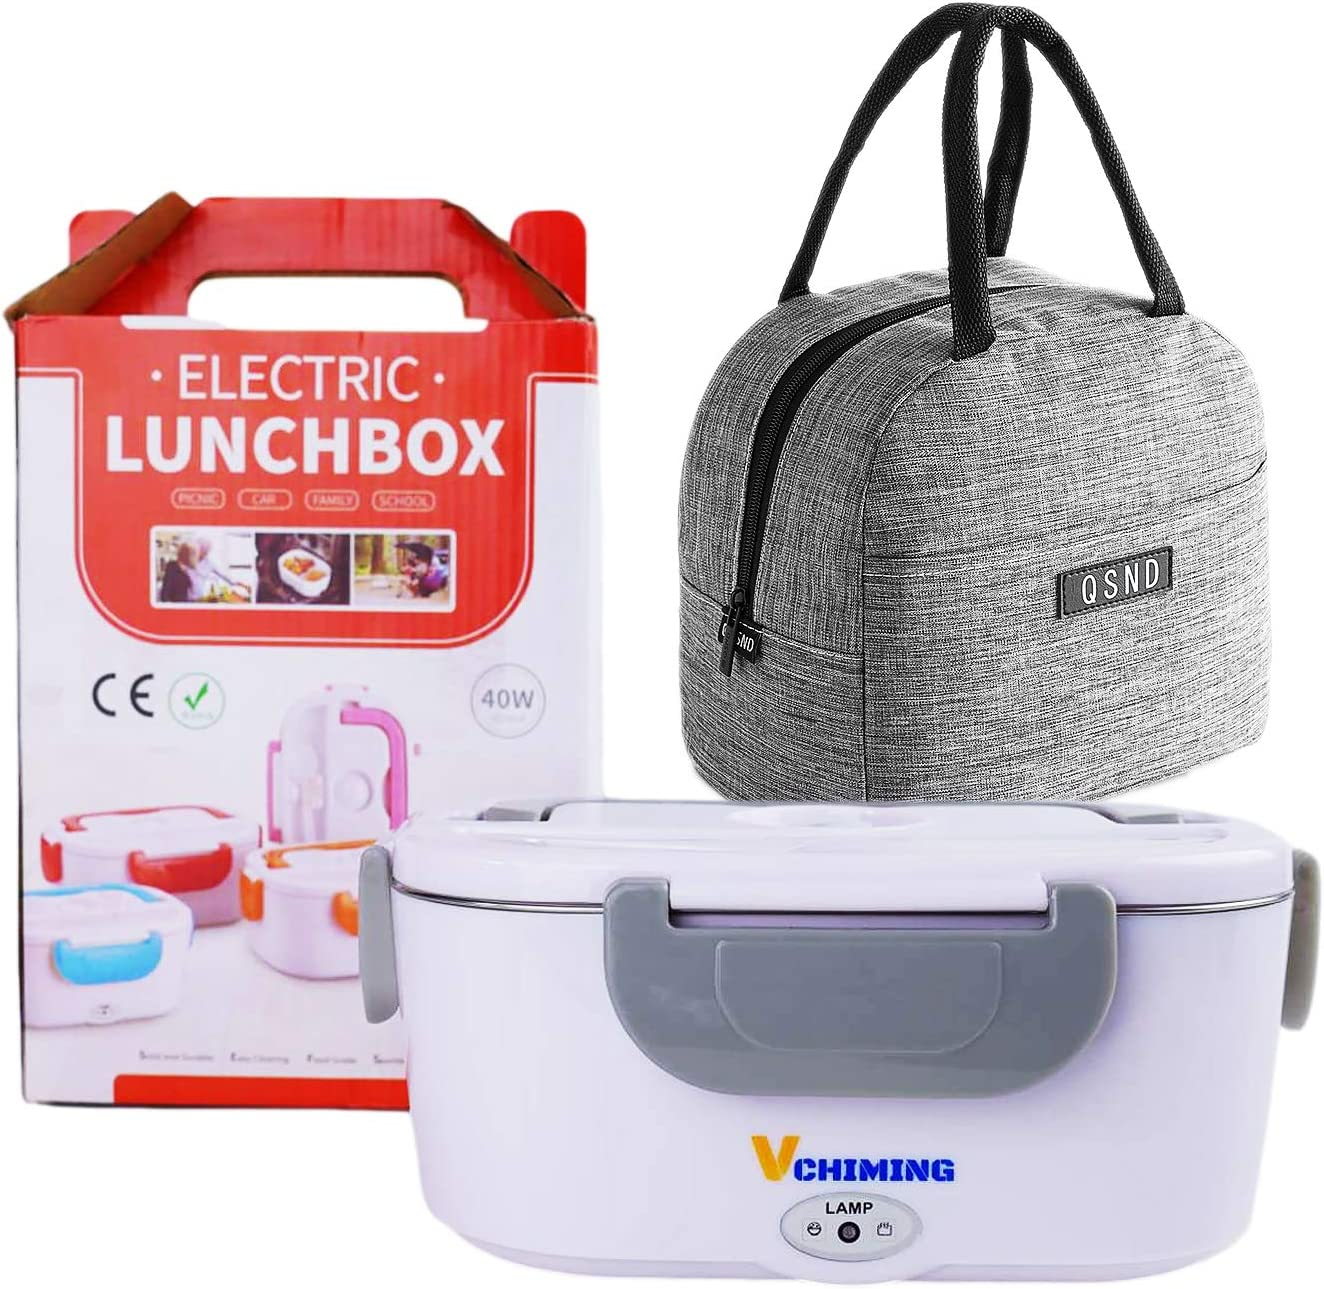 Vchiming Electric Lunch Box Food Warmer 2-In-1 Portable Food Heated Lunch Box for Car, Home & Office 12V 110V 40W, Removable Stainless Steel Hot Food Container 1.5L, Free Carry Bag and Spoon